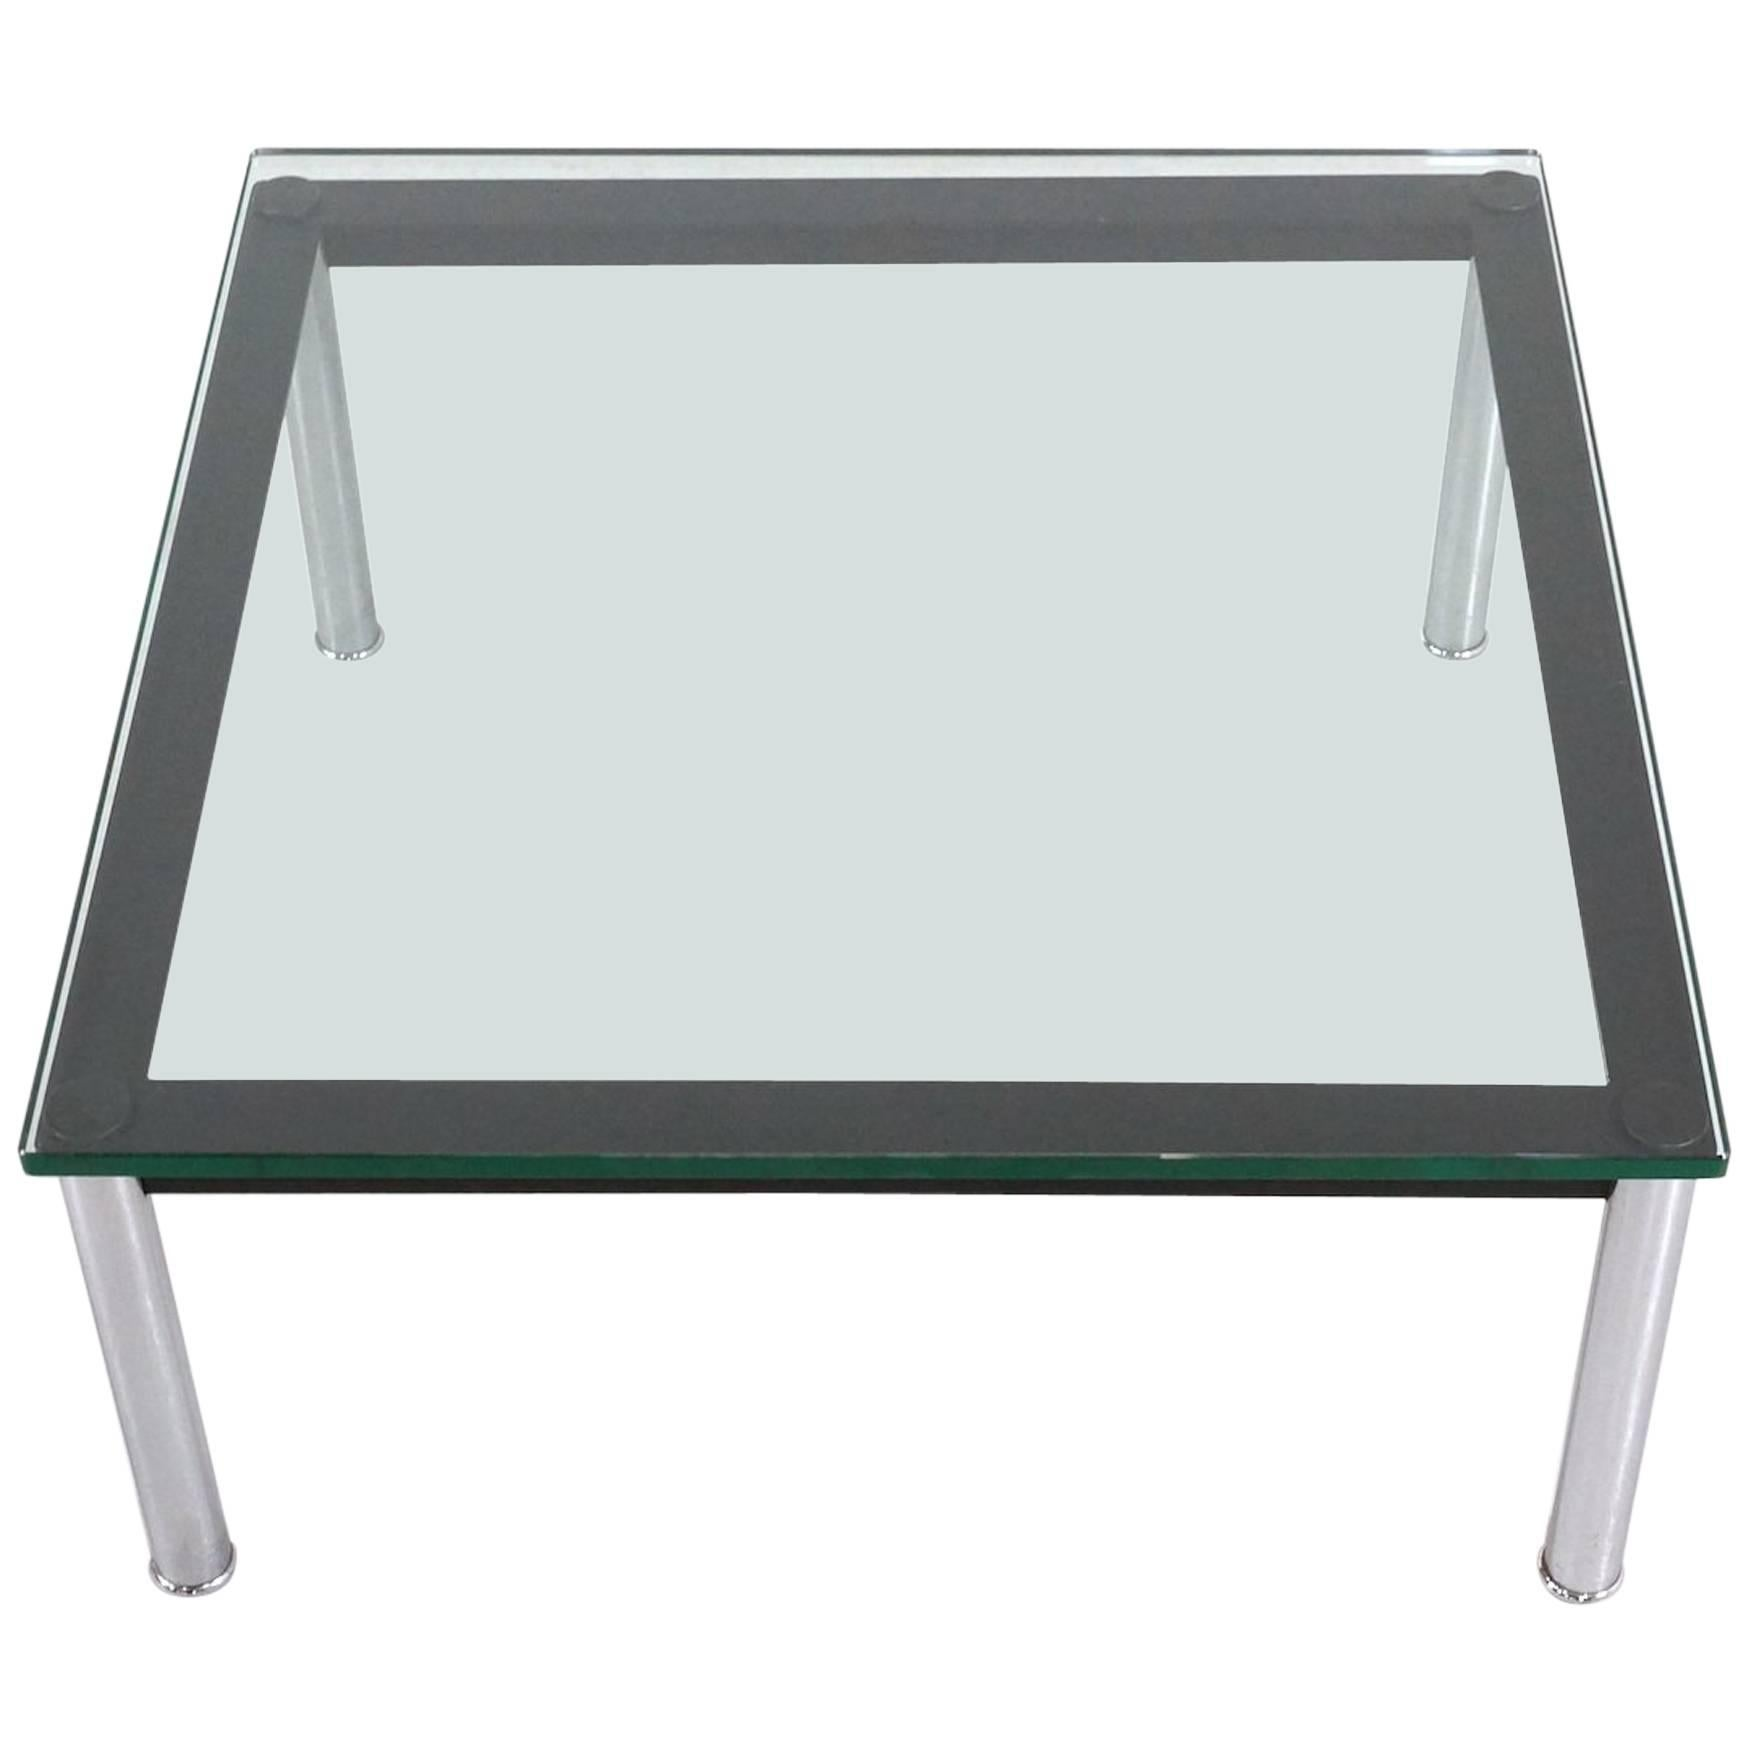 Le Corbusier Glass Table LC10 By Cassina 1